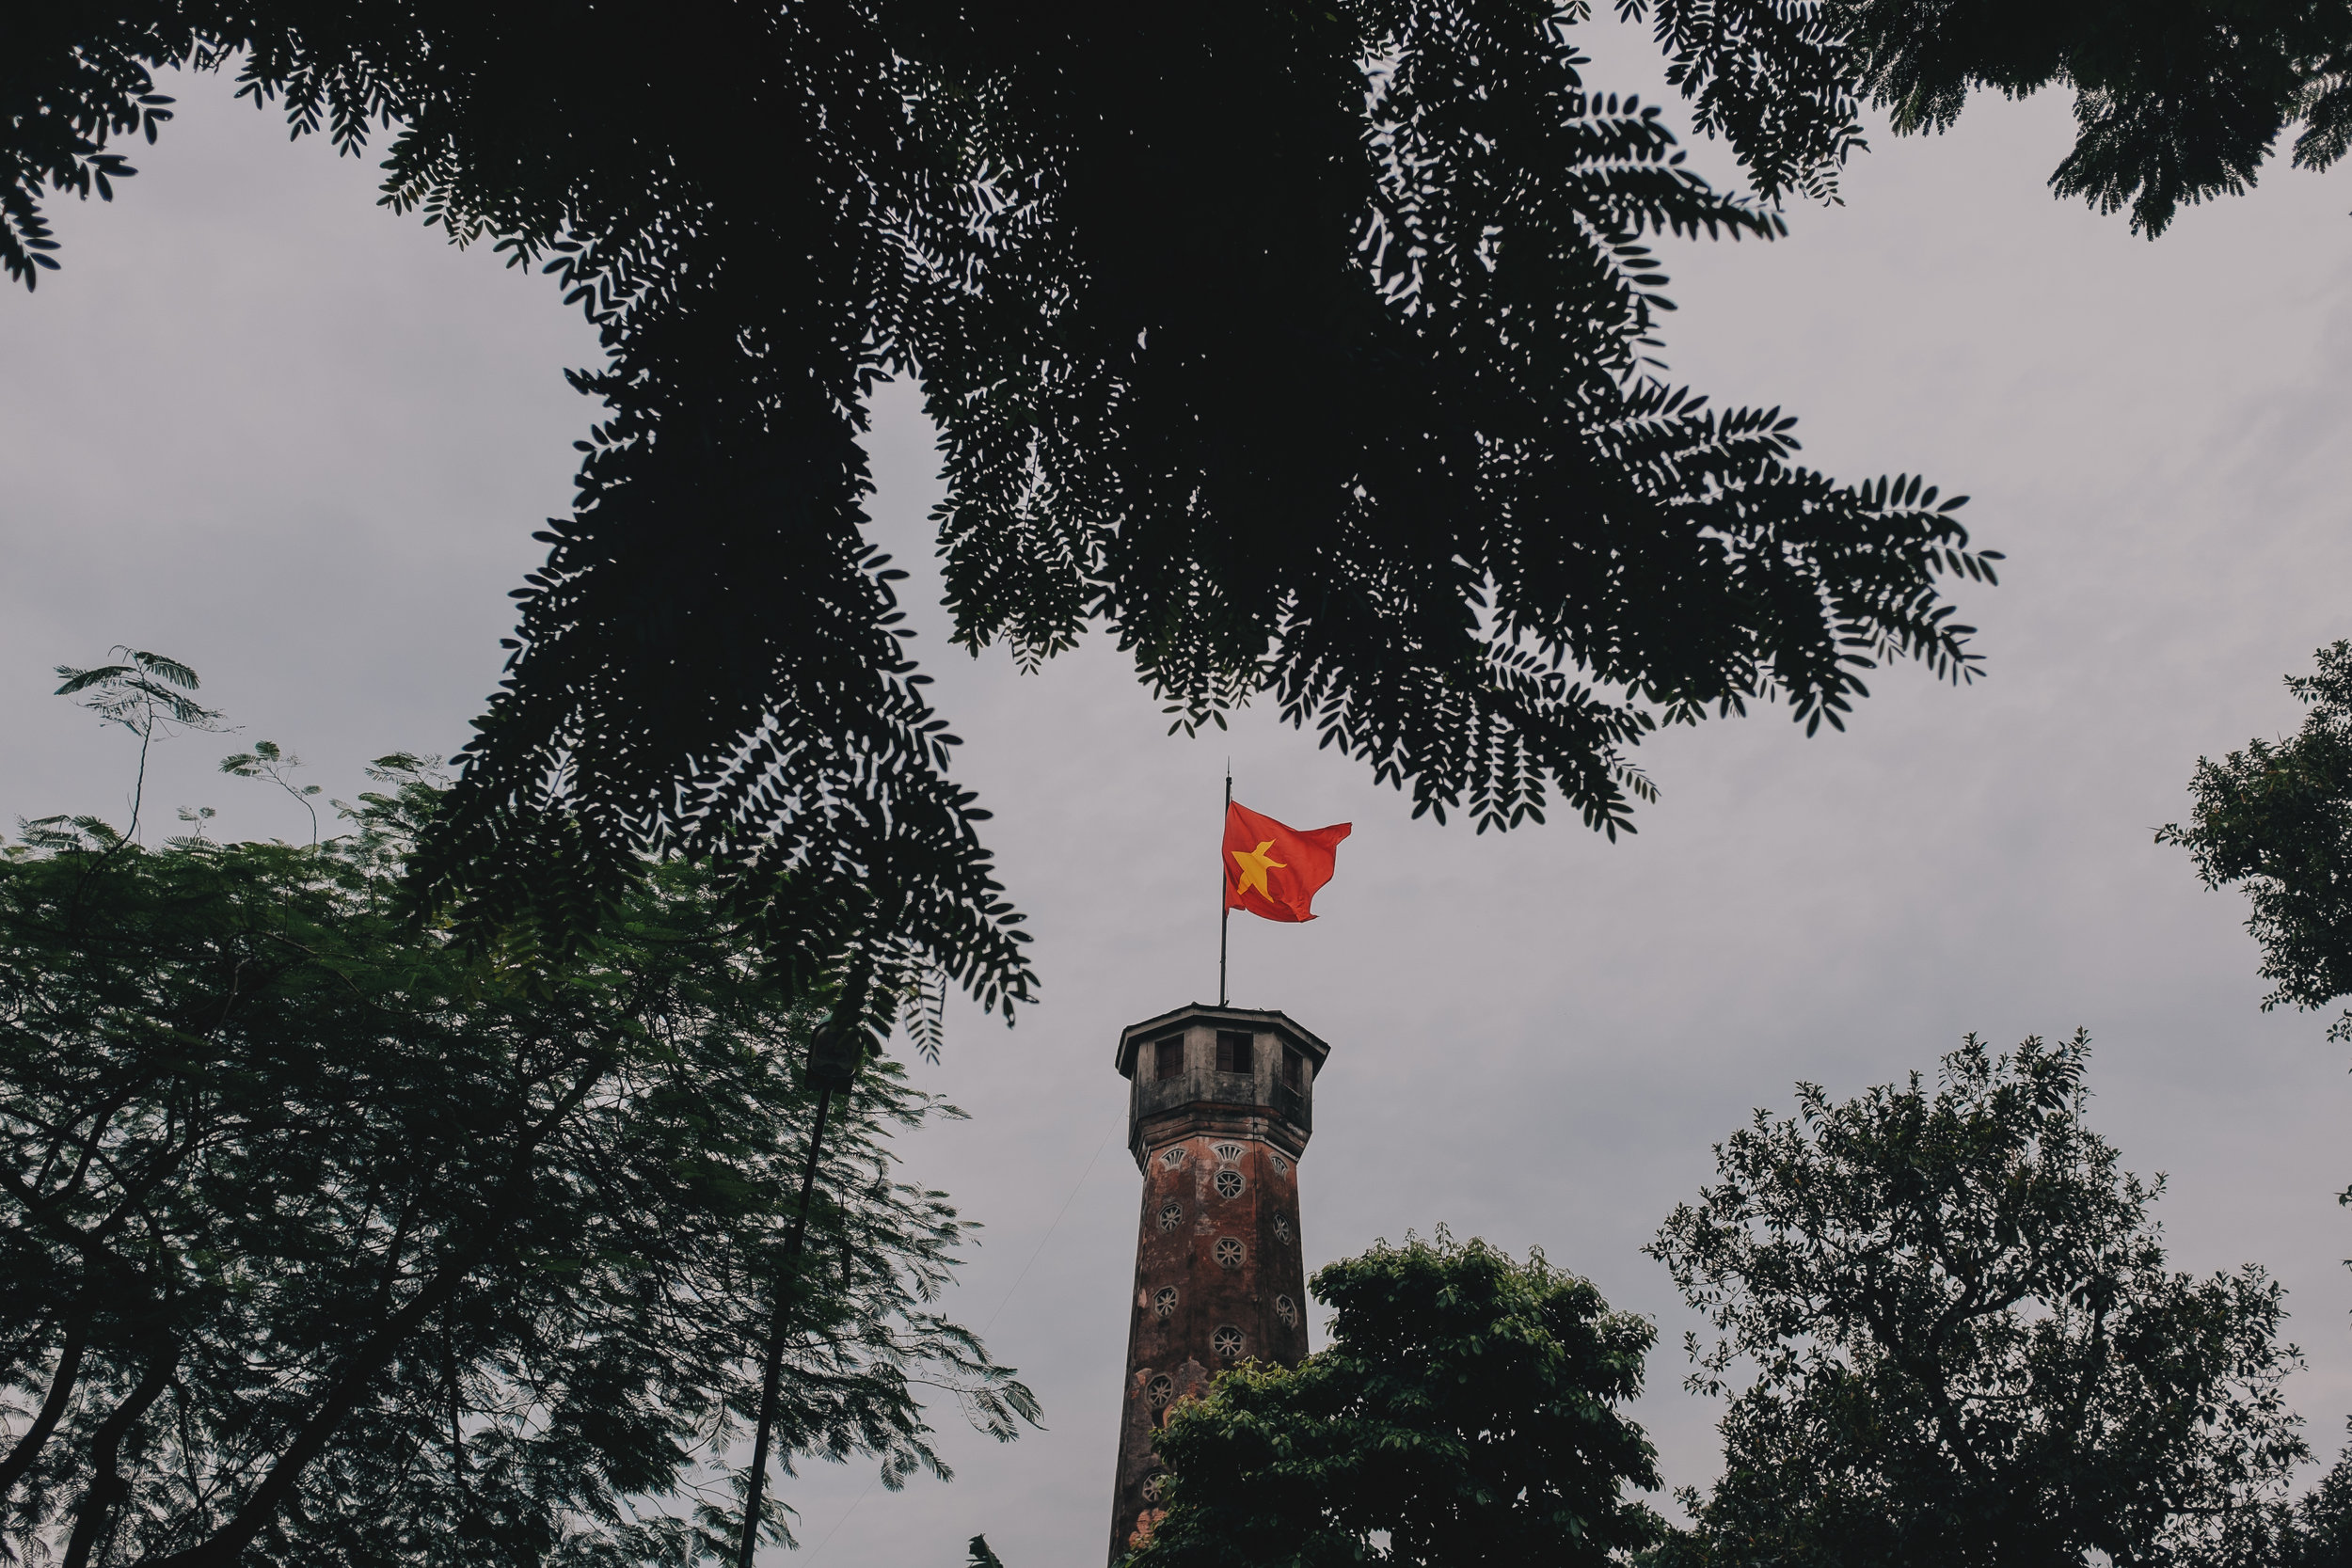 The Flag Tower of Hanoi is located in the Ba Đình district and is part of the Hanoi Citadel, a World Heritage Site